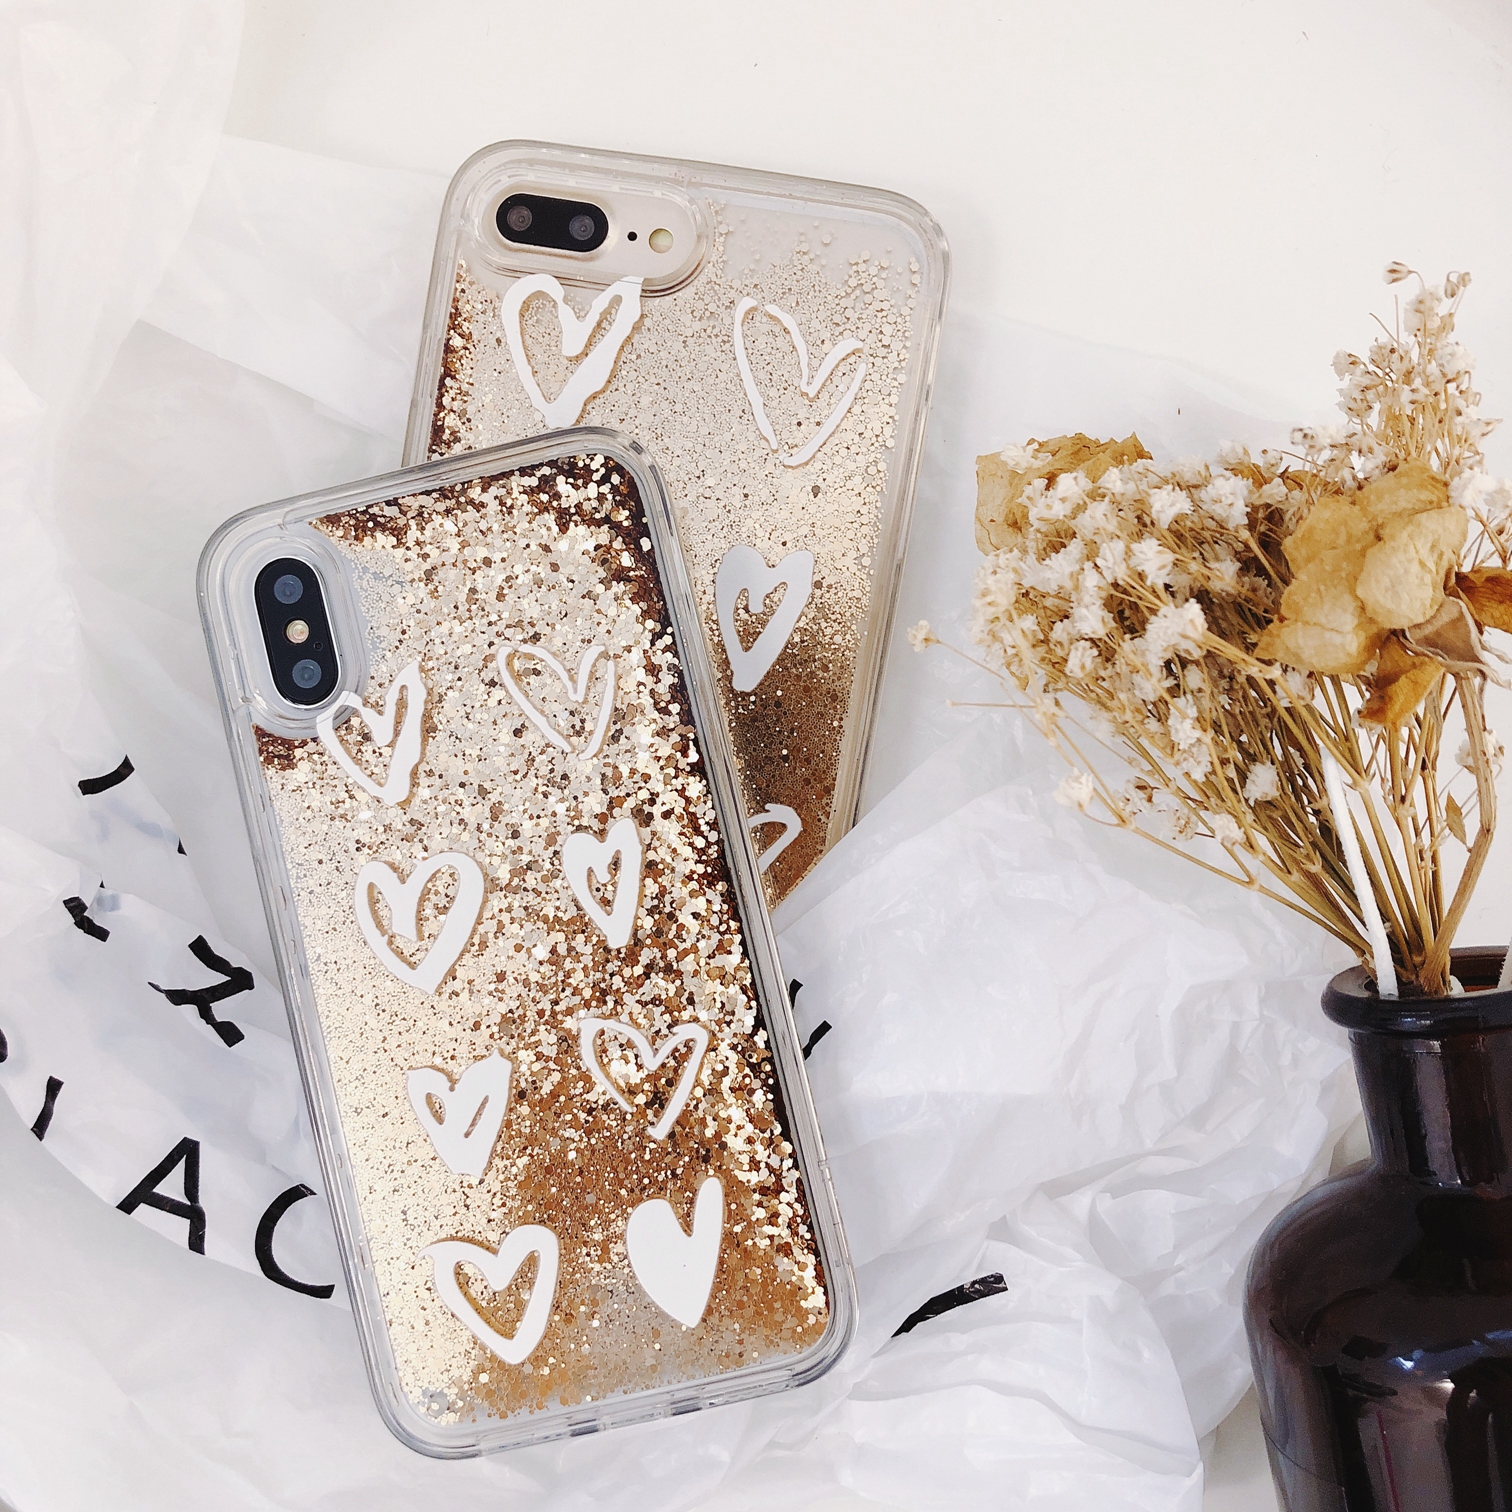 Phone Pouch Phone Bags & Cases Haianguo For Iphone 7 Case Glitter Bling Liquid Sand Star Quicksand Soft Case For Iphone 6s Case 5s Se 6 7 8 Plus Iphone X Case